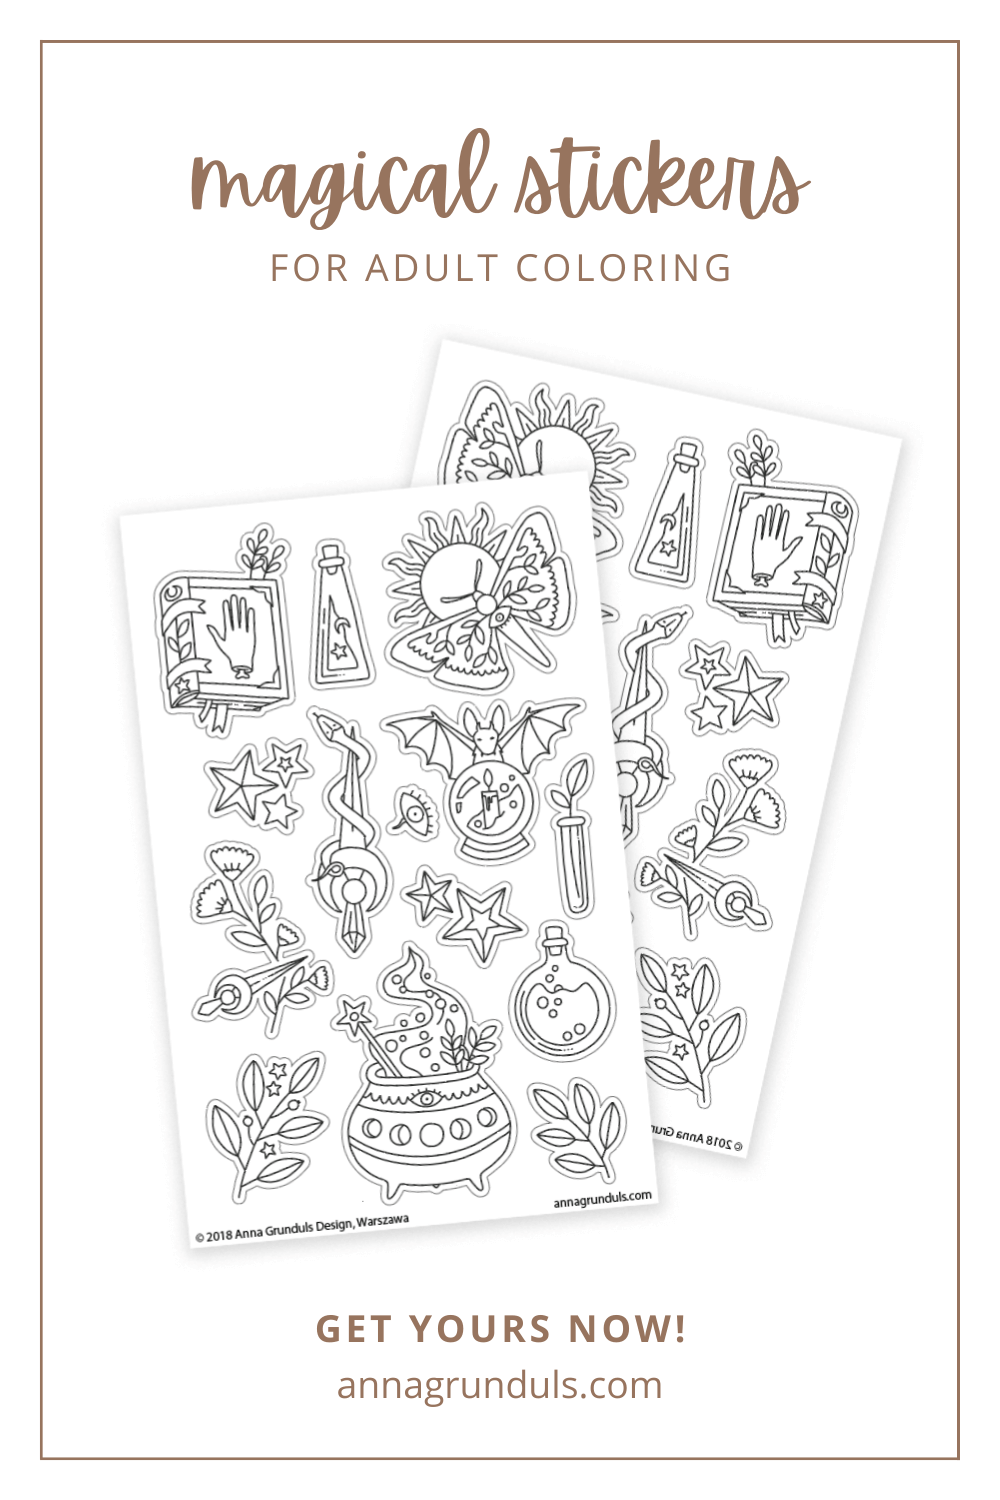 magical stickers for adult coloring pinterest pin